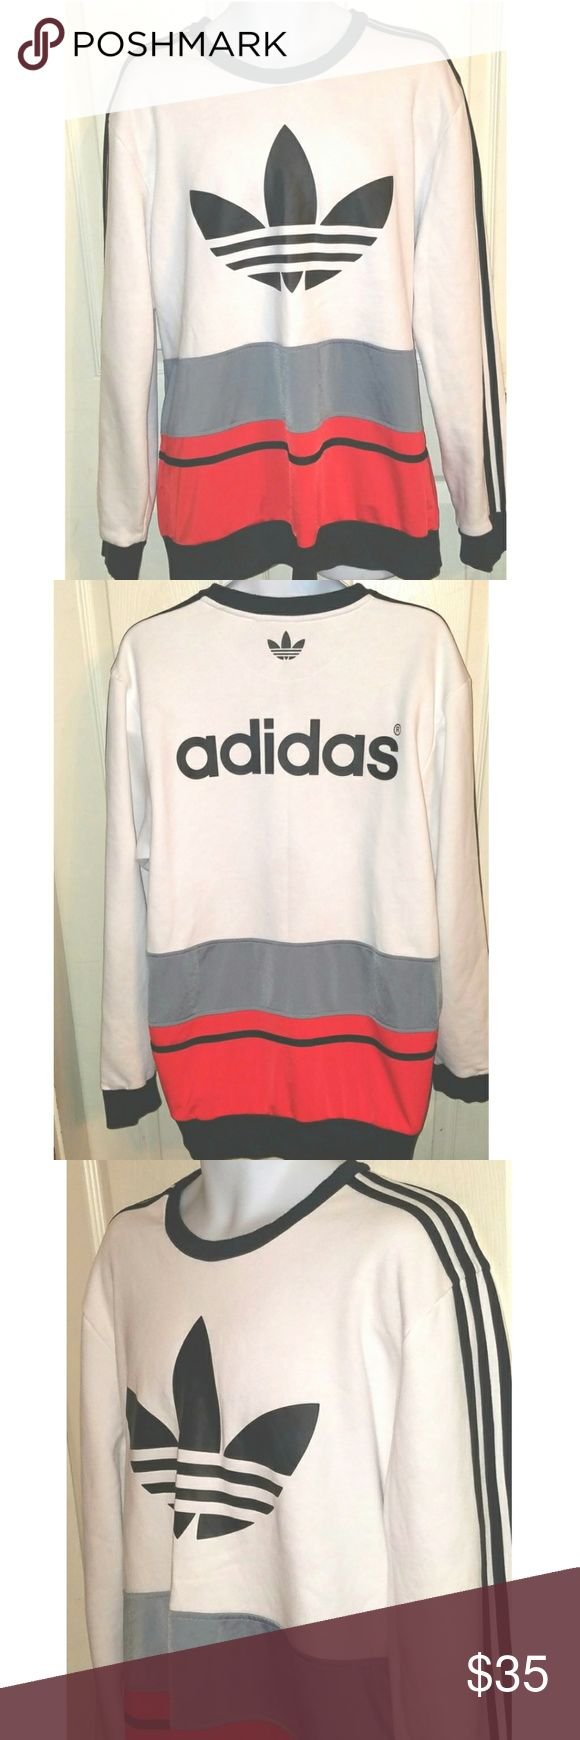 Adidas Originals Trefoil Mens Sweatshirt XL This is a mens XL (size tag missing) retro sweatshirt  by Adidas Oroginals. The chest measures 25 inches and the length is 31 inches. adidas Shirts Sweatshirts & Hoodies